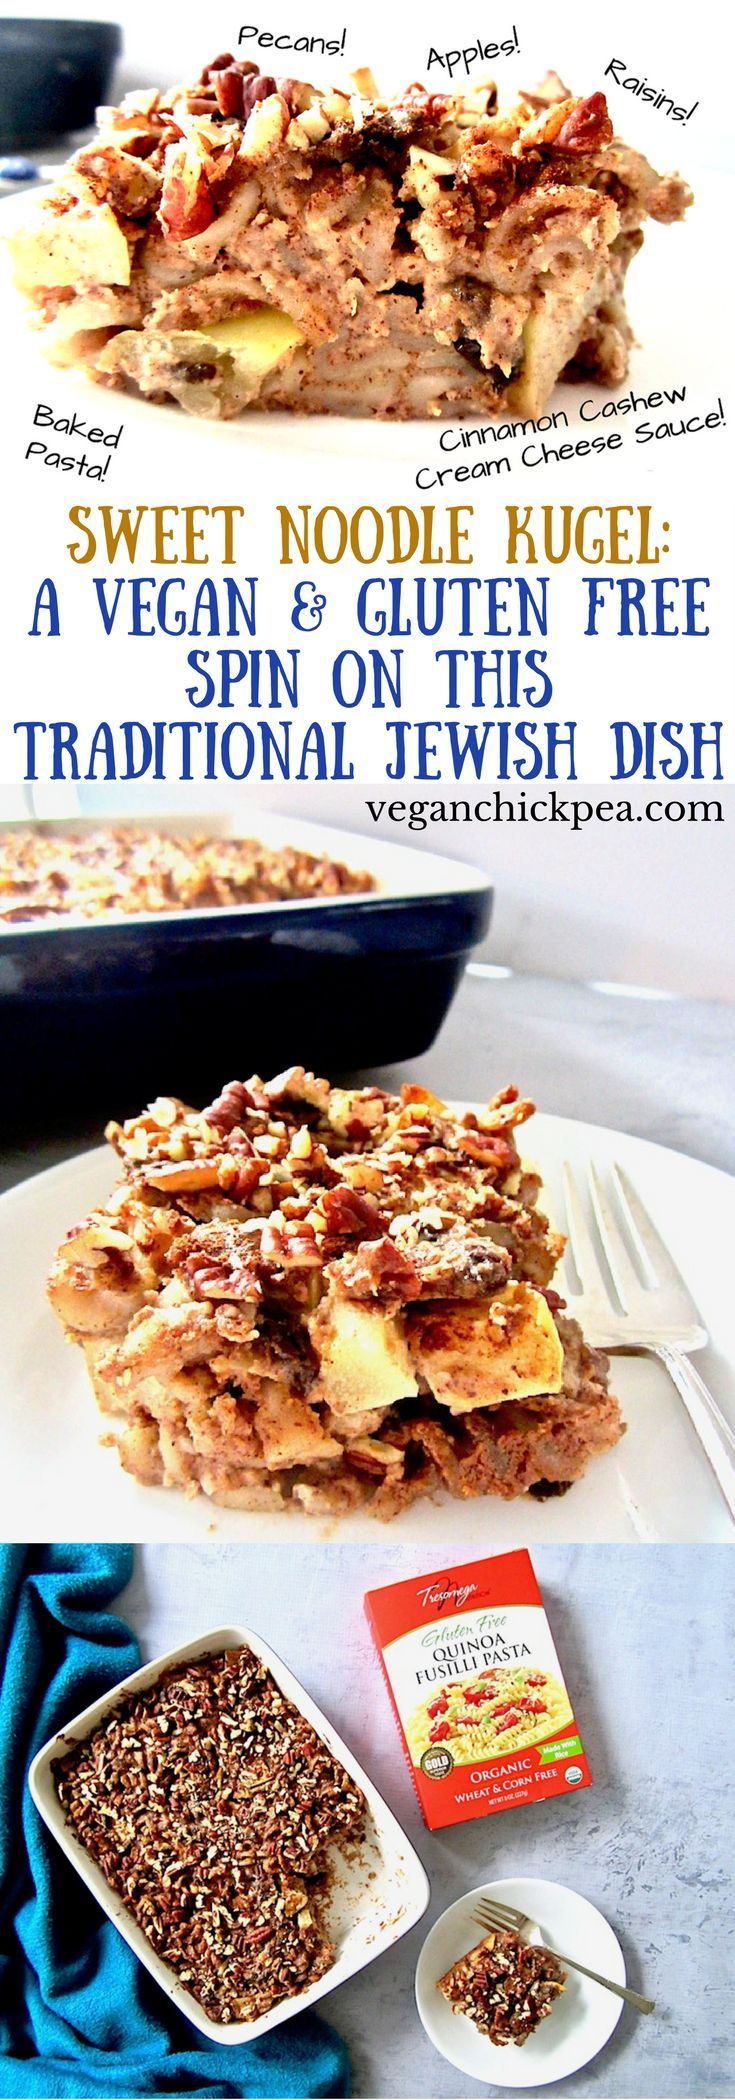 Sweet Noodle Kugel is a traditional Jewish dish, often served during Hanukkah, and now can be enjoyed by almost everyone with this gluten free, dairy free, vegan and refined sugar free version! With a creamy cinnamon cashew cream cheese sauce, apples, raisins, pecans and perfectly soft yet chewy noodles, you're going to love this unique and festive treat! #Tresomega #OrganicsForLife @tresomega #jewish #vegan #glutenfree #Kugel